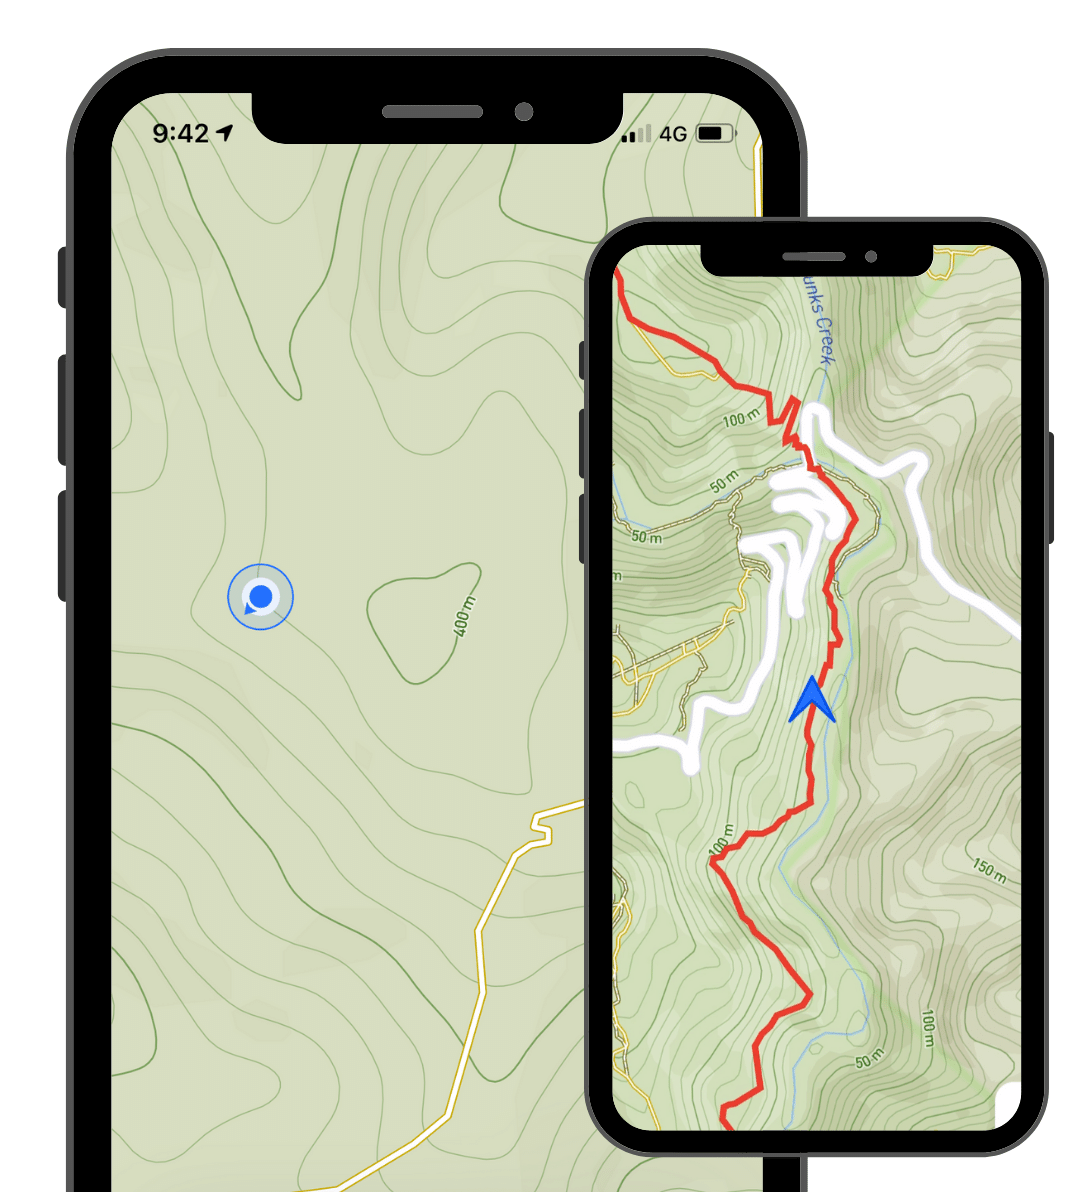 The best trail running and hiking app. An example of excellent maps on the Capra app.